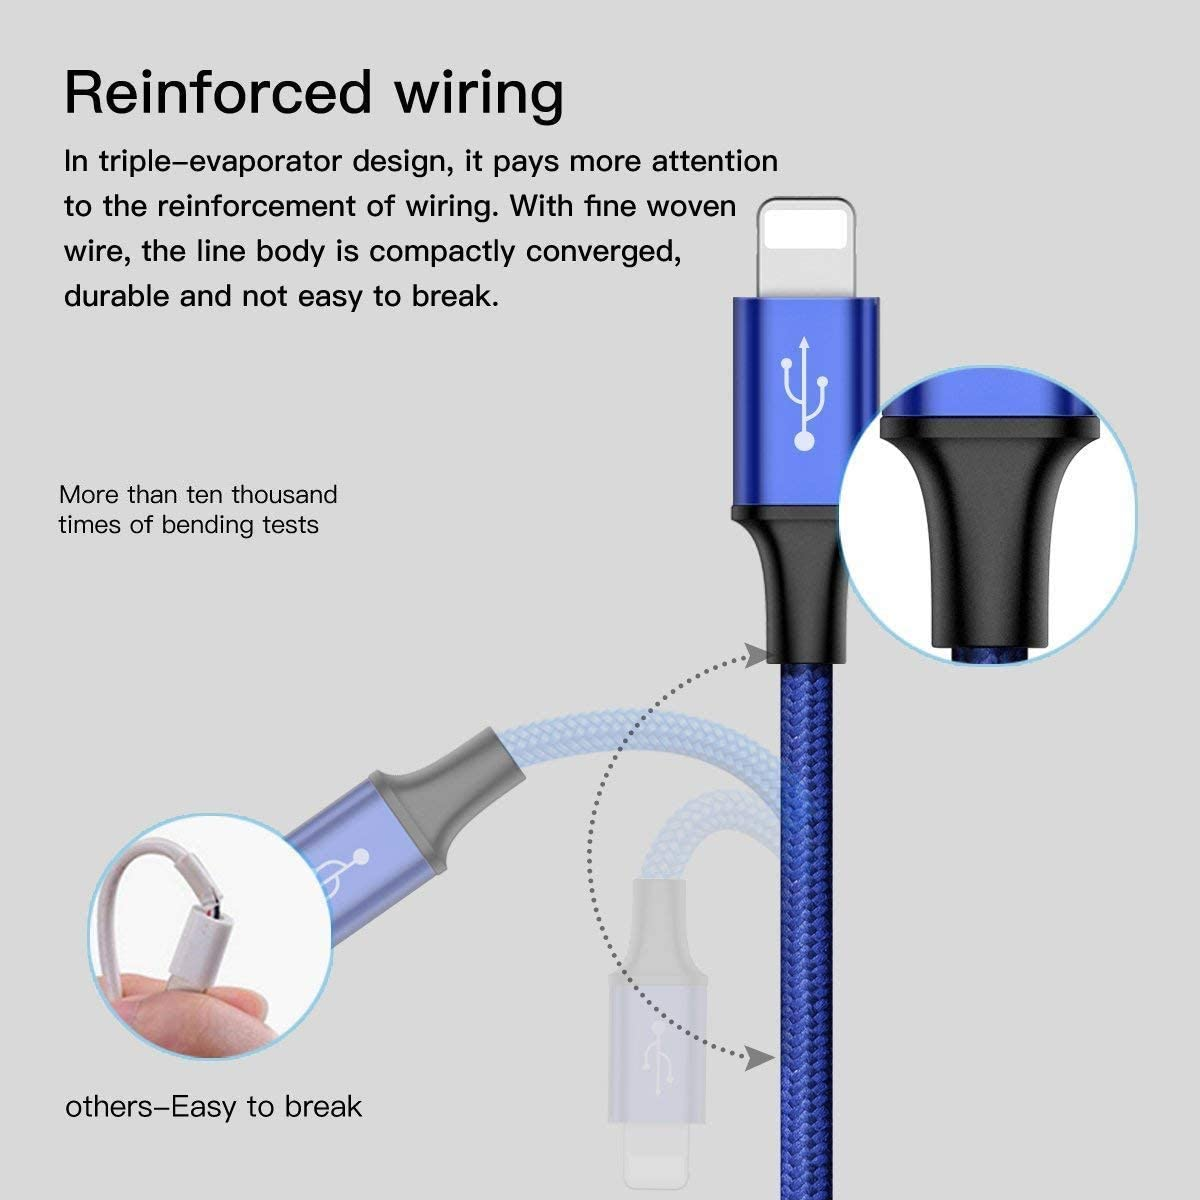 Nokia Black Android Samsung Galaxy iPad SFTRANS 3.9ft 1.2m 3 in 1 Nylon Braided Cable Compatible with Micro USB Type C Apple iPhone Echo Dot Huawei LG Motorola Kindle Multi USB Charger Cable